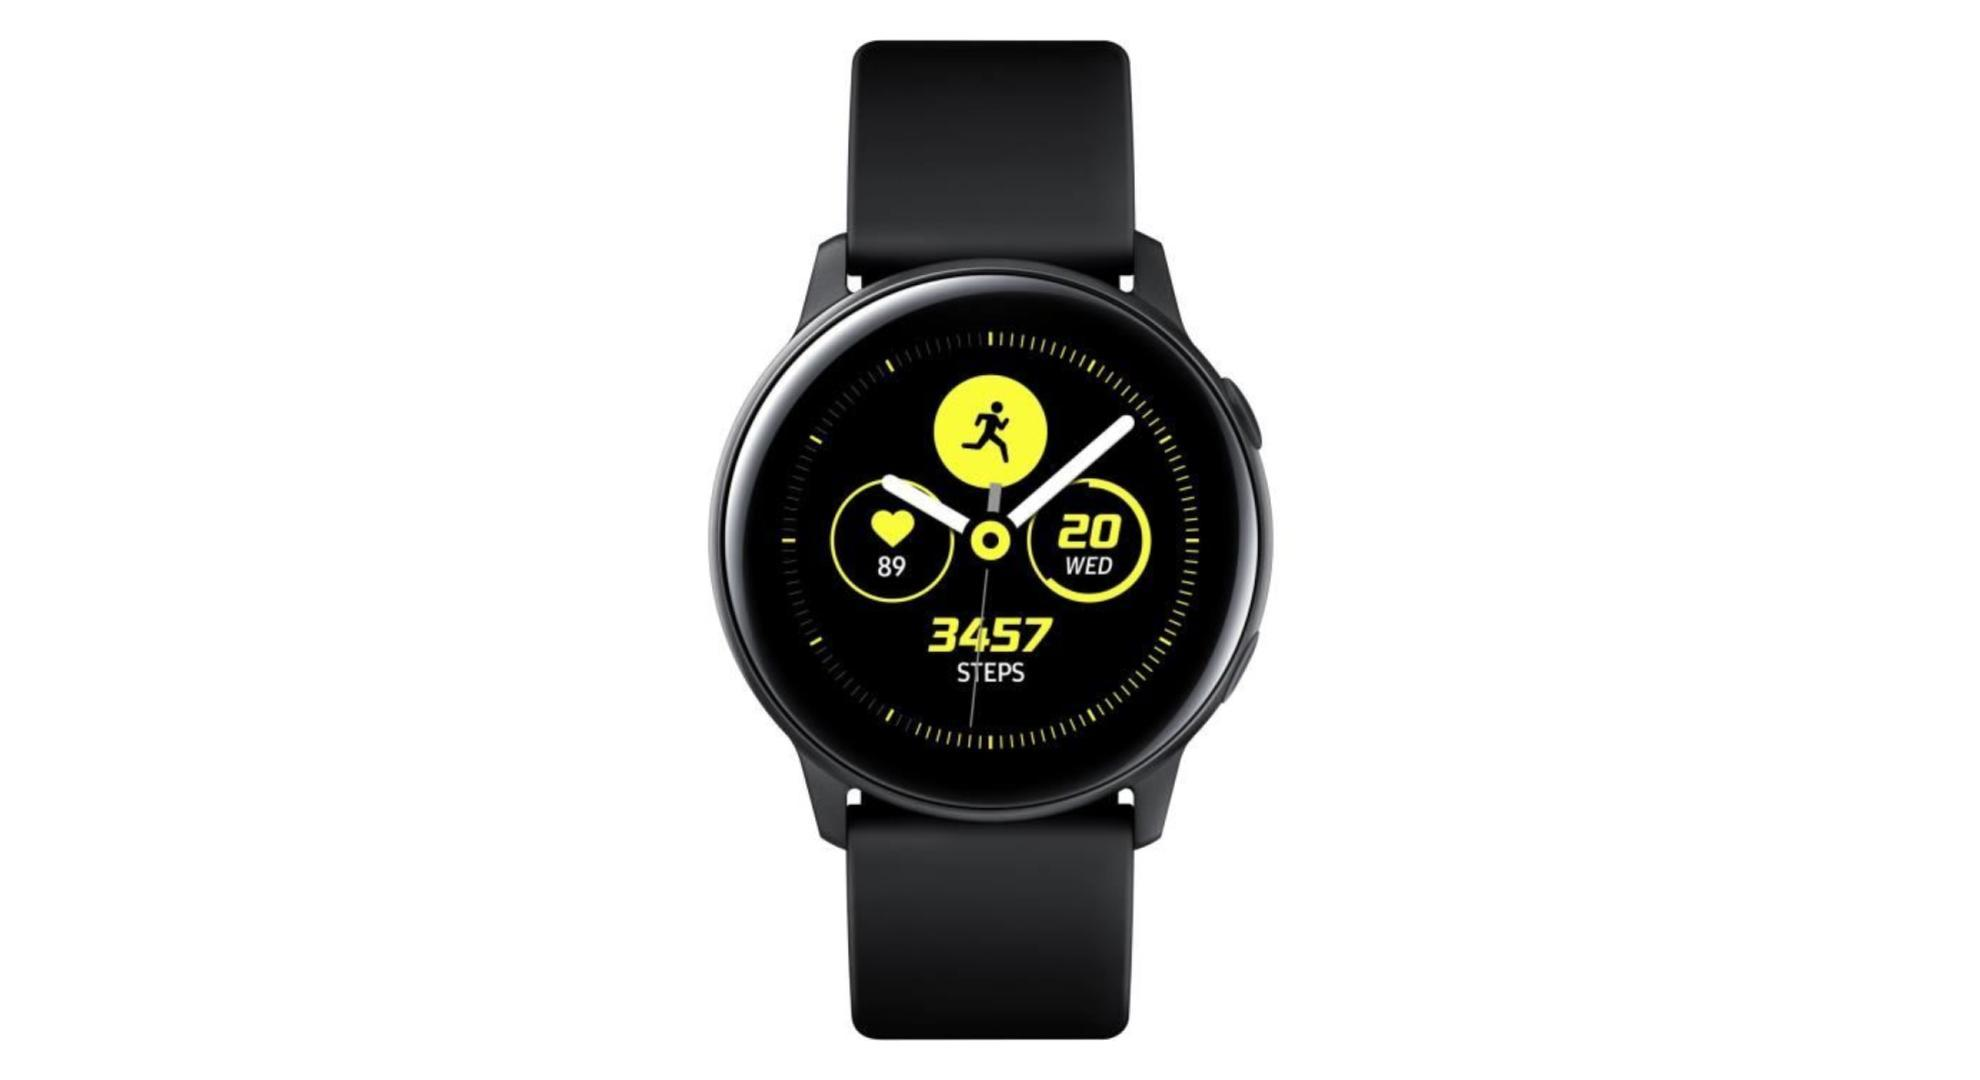 🔥 Bon plan : la Samsung Galaxy Watch Active descend à 211 euros (au lieu de 249 euros)